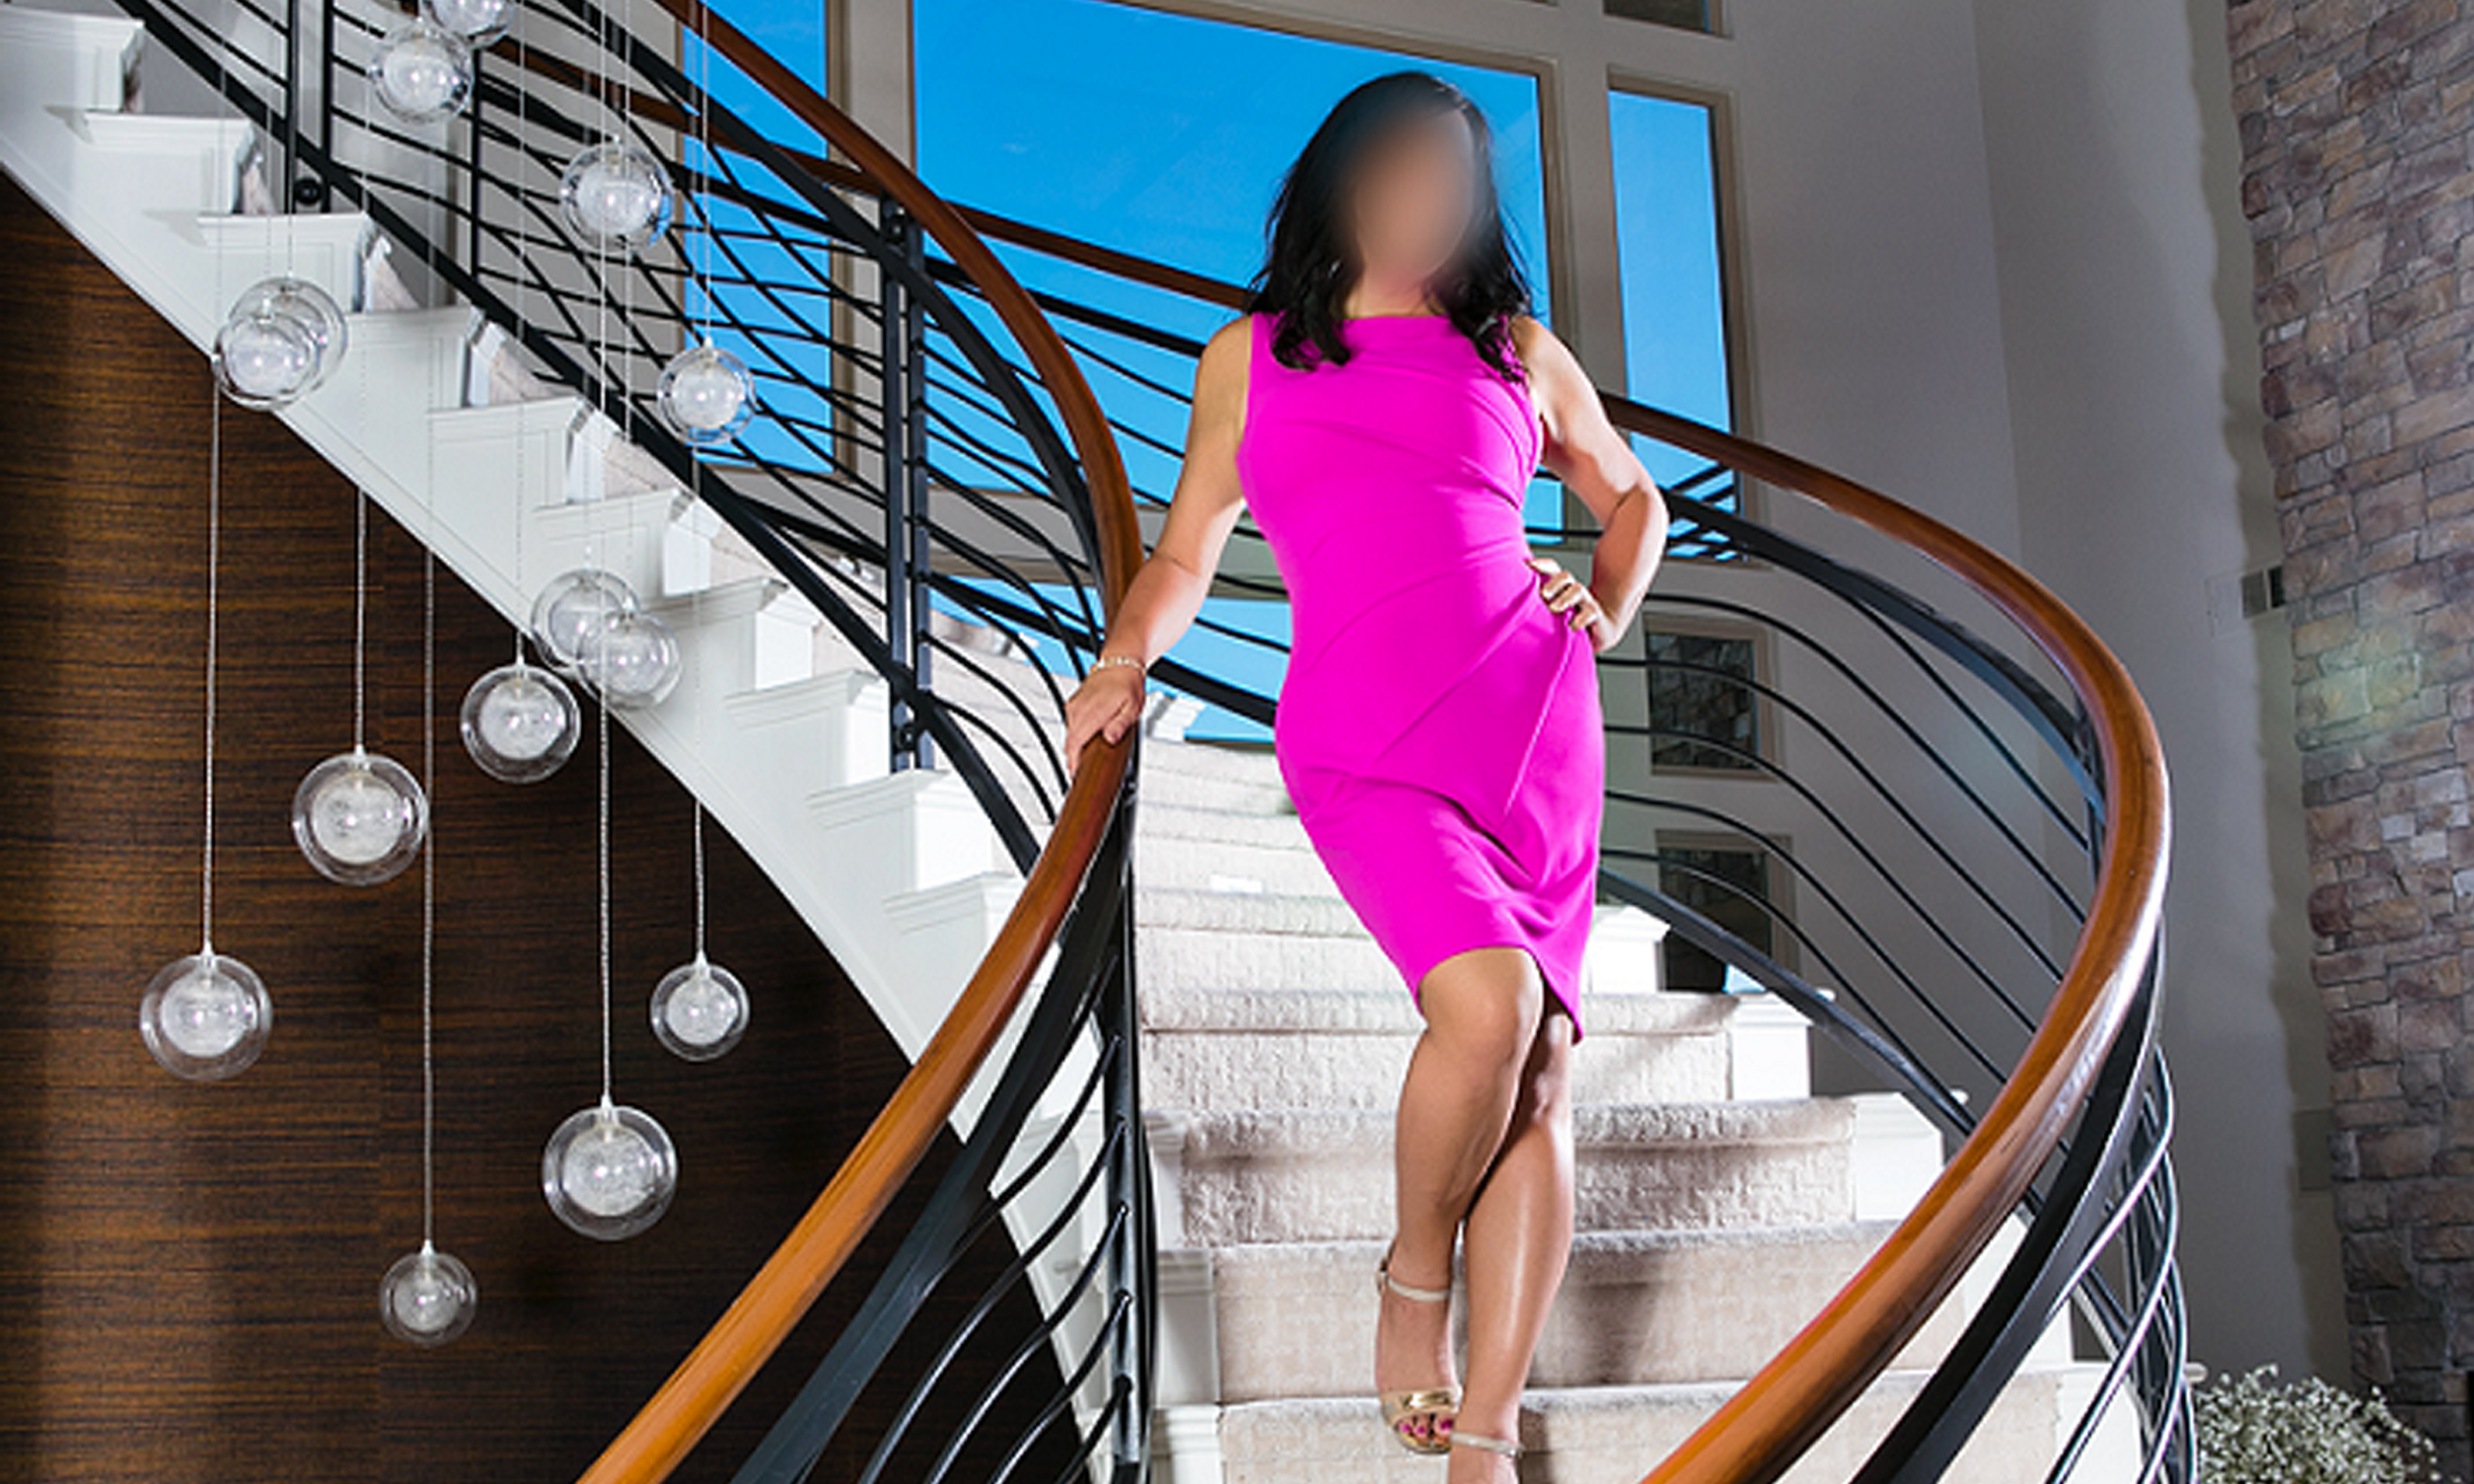 Kate in pink dress on stairs